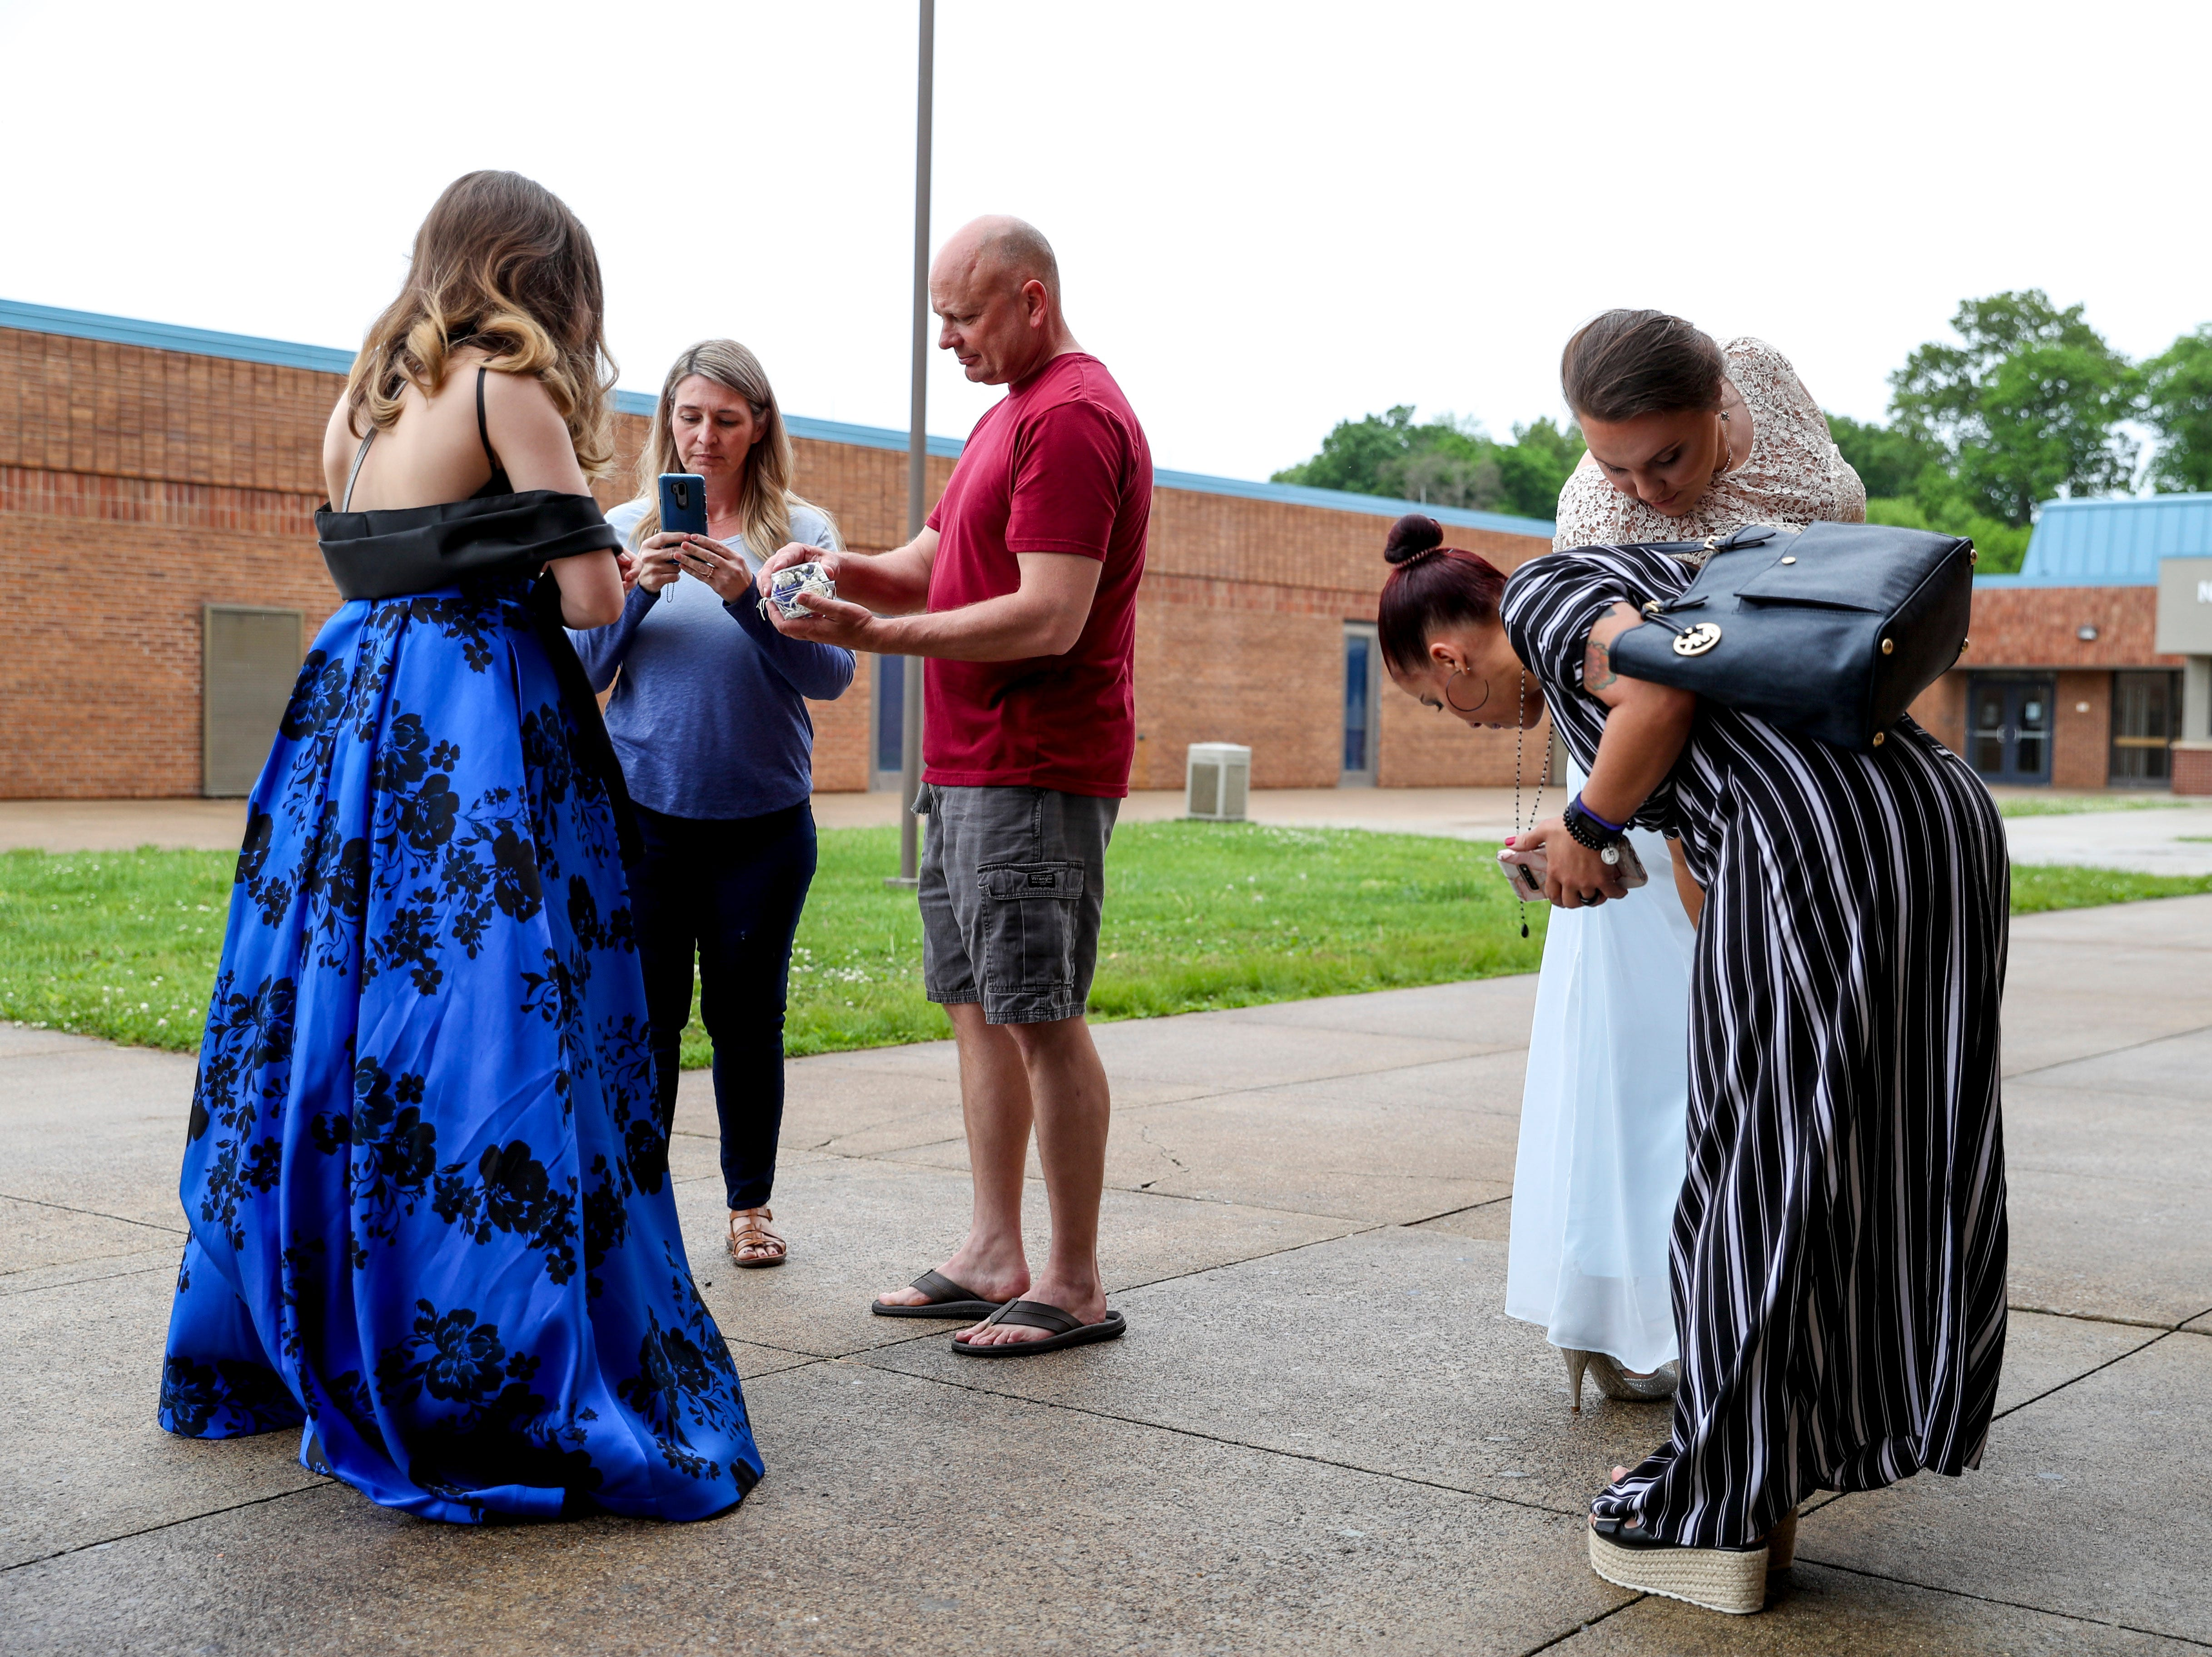 Ambar Tejada, right, adjusts Mia Lopez's dress while the Russell's take photos of their daughter at Northeast High School in Clarksville, Tenn., on Saturday, May 4, 2019.